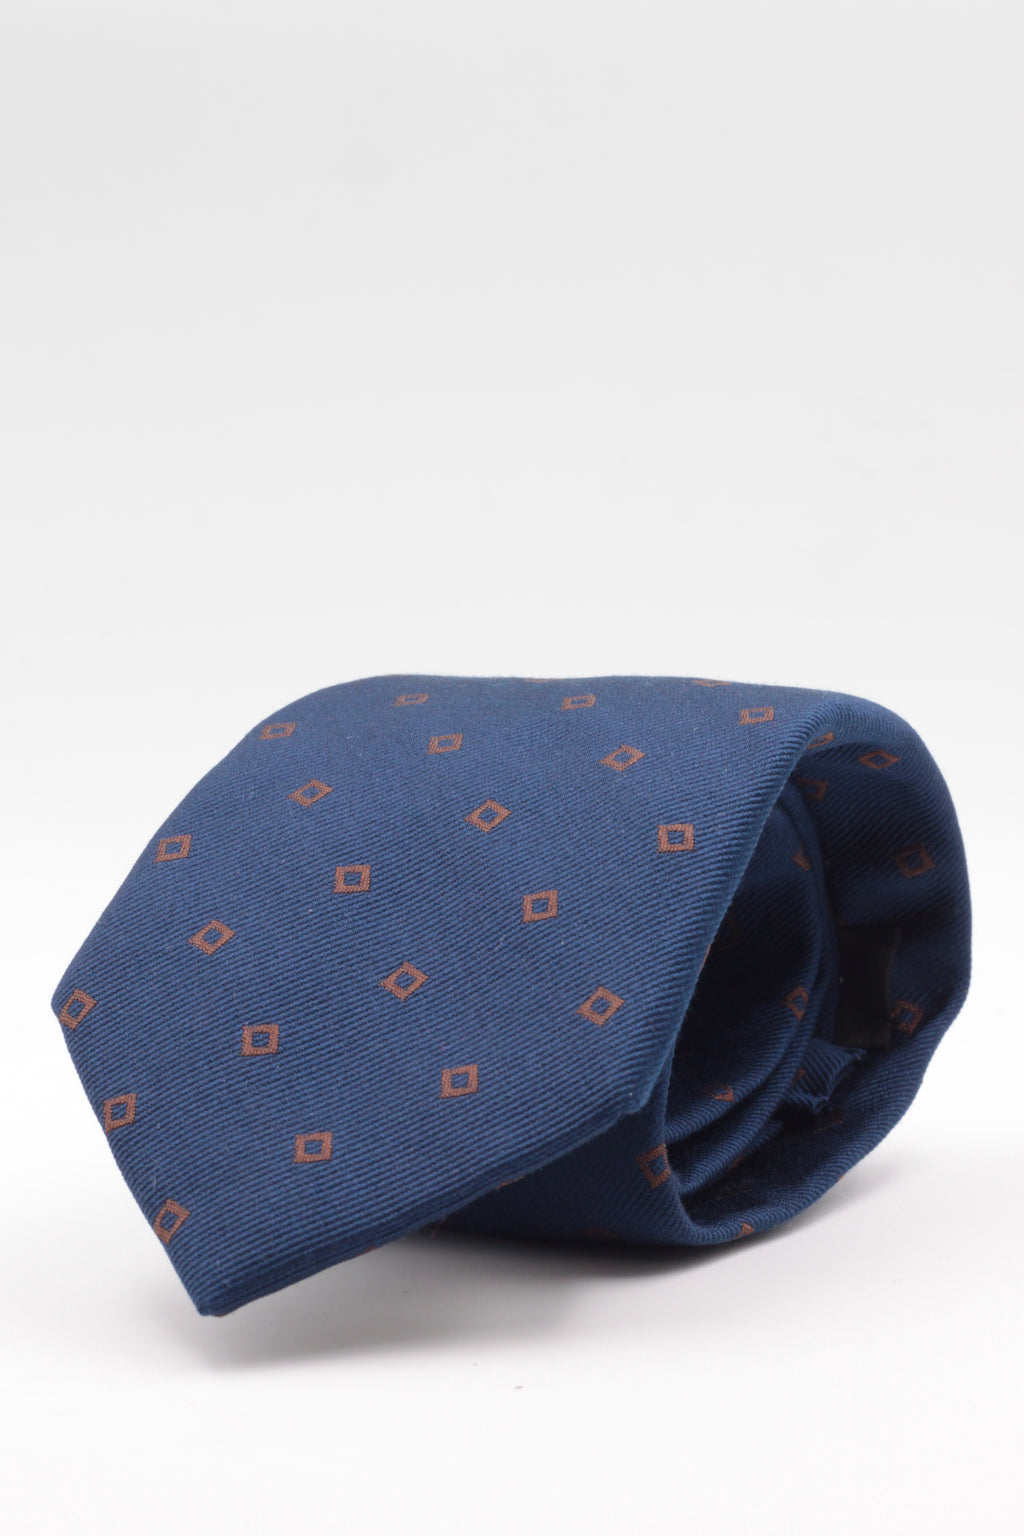 Holliday & Brown - Silk   - Blue navy, brown motif tie #3603